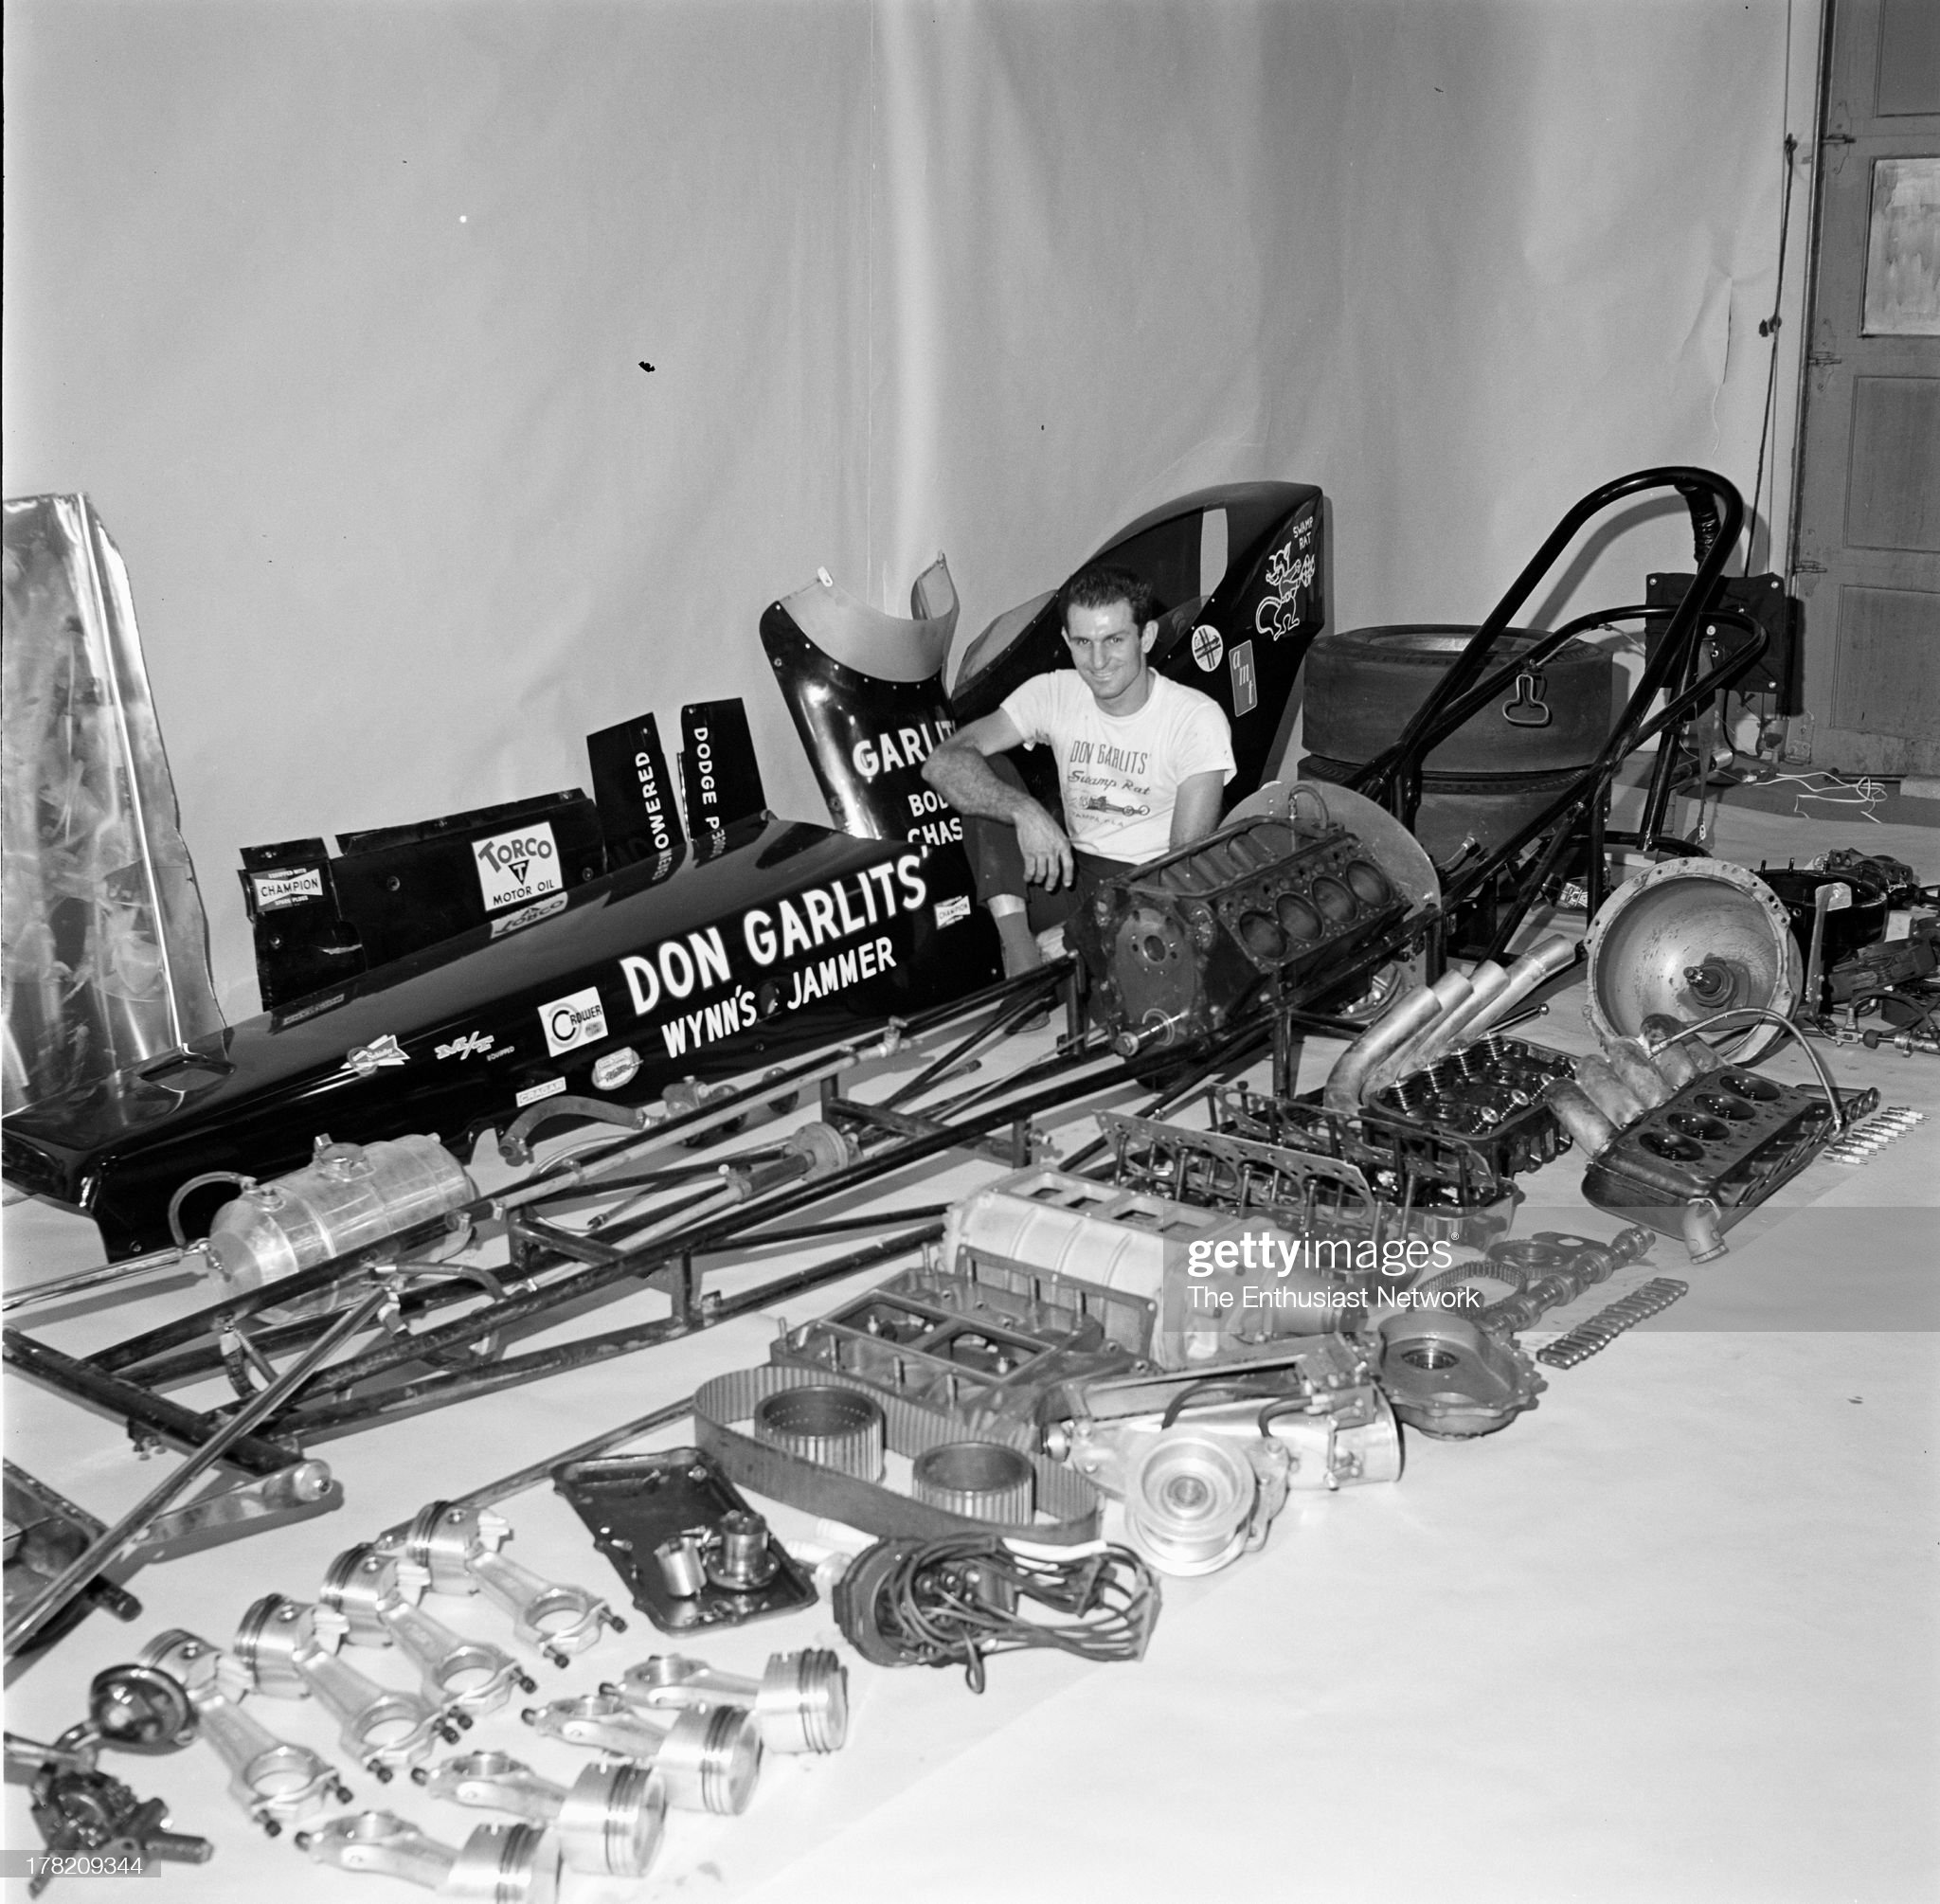 Big Daddy Don Garlits Wynn's Jammer Dragster : News Photo